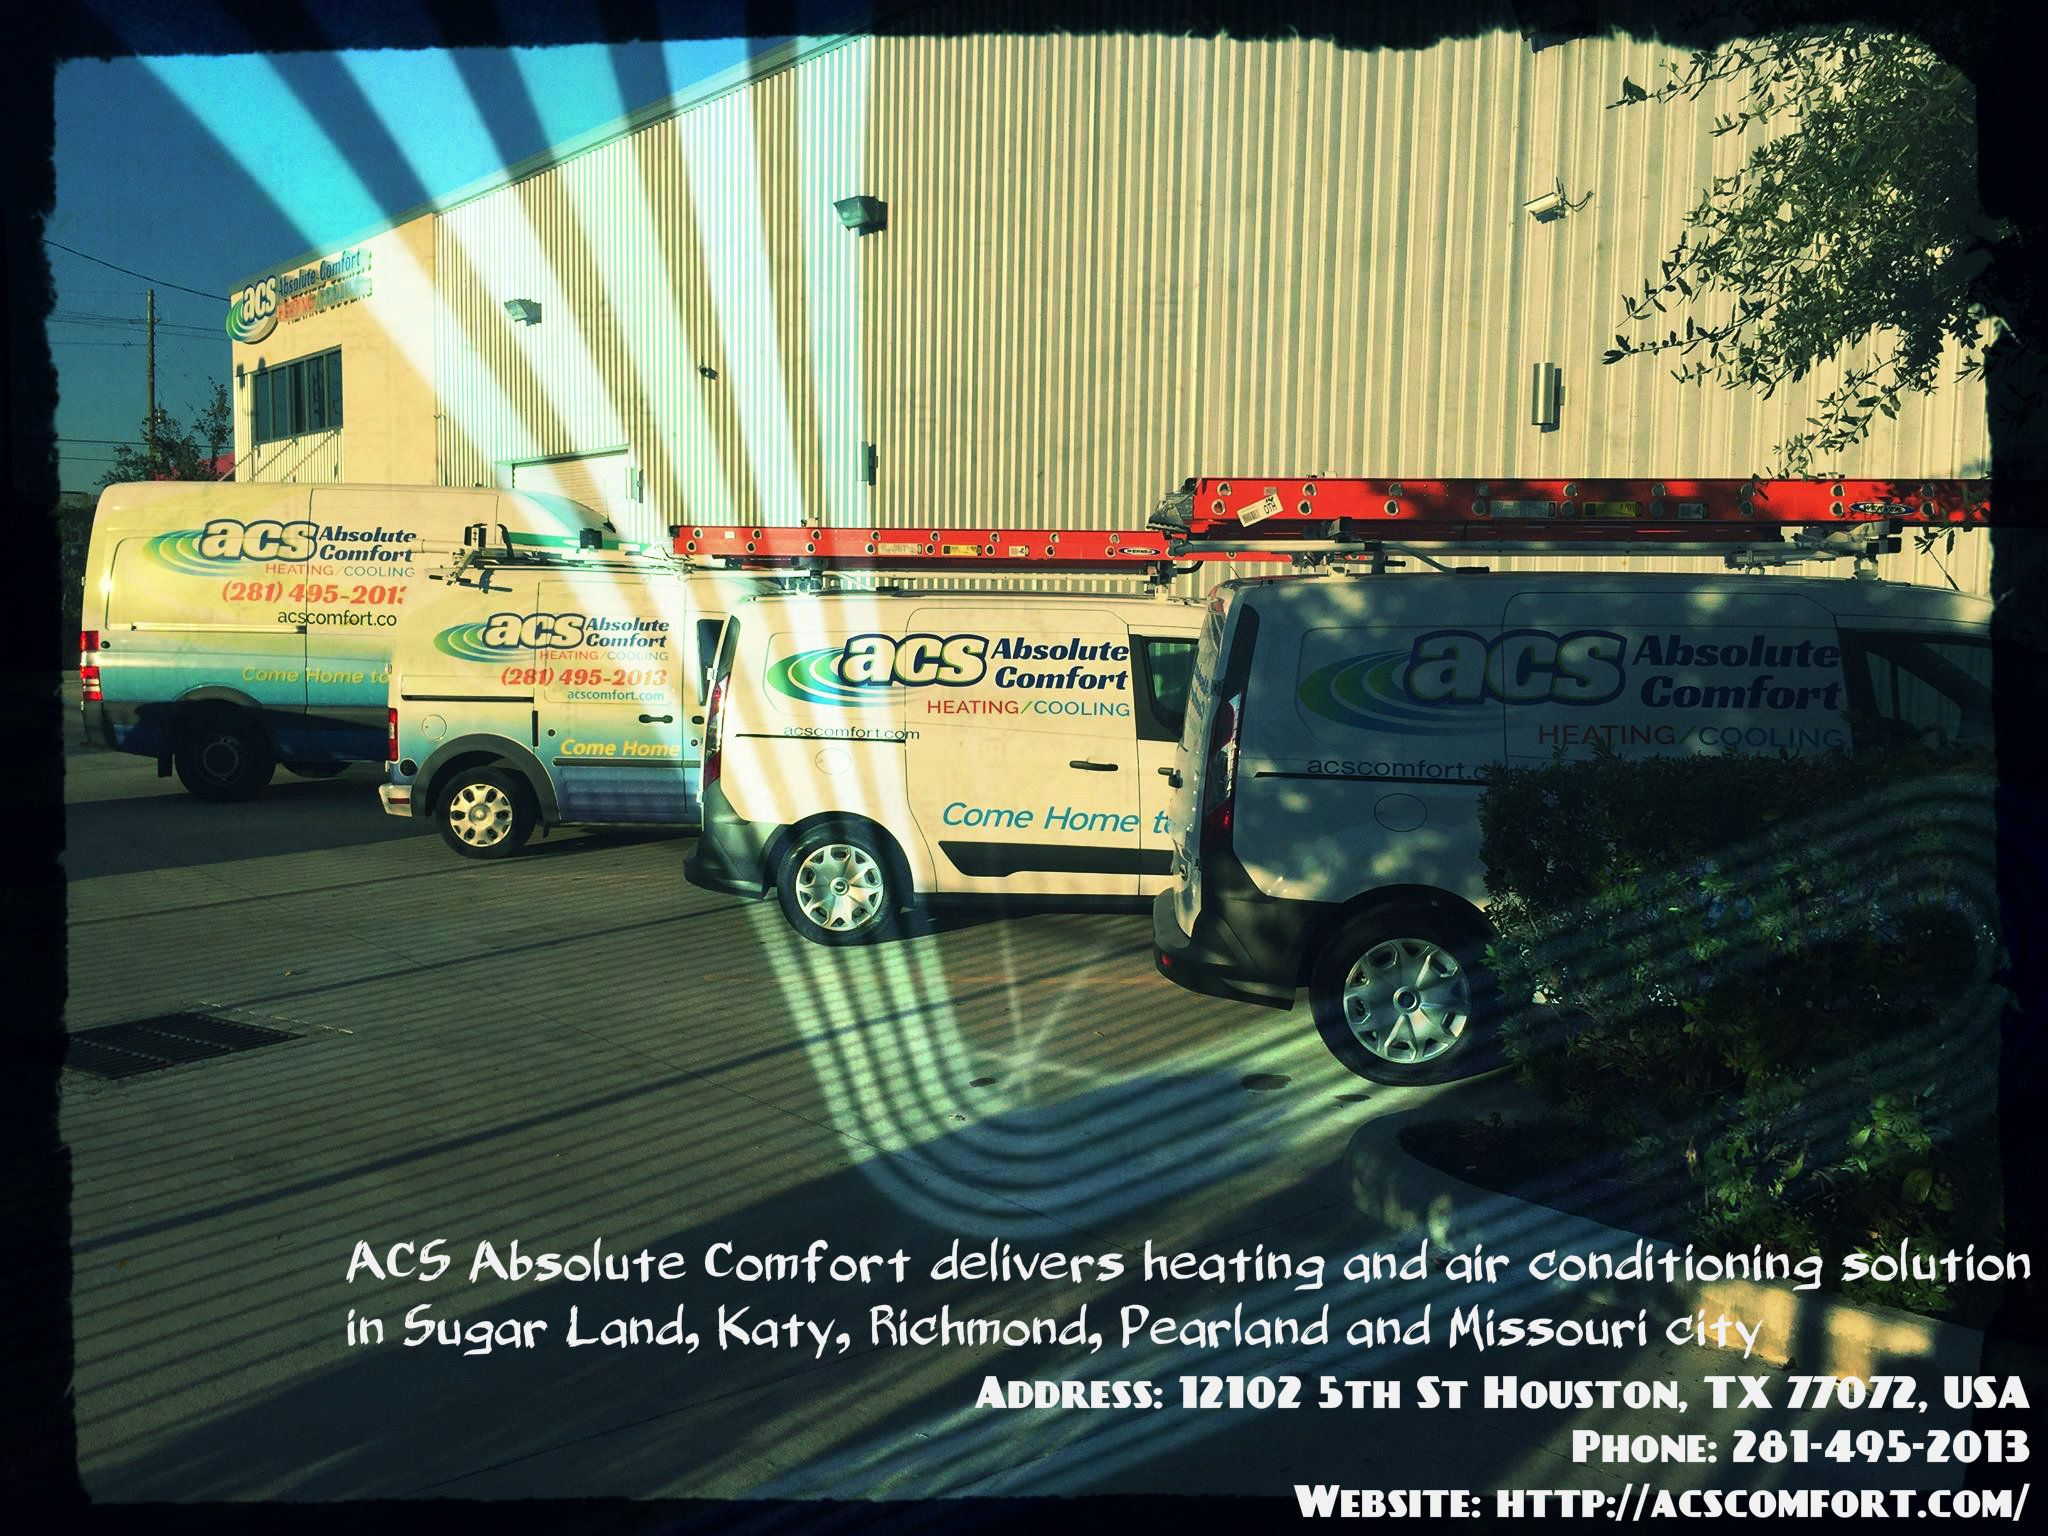 ACS Absolute Comfort is a trusted heating and air